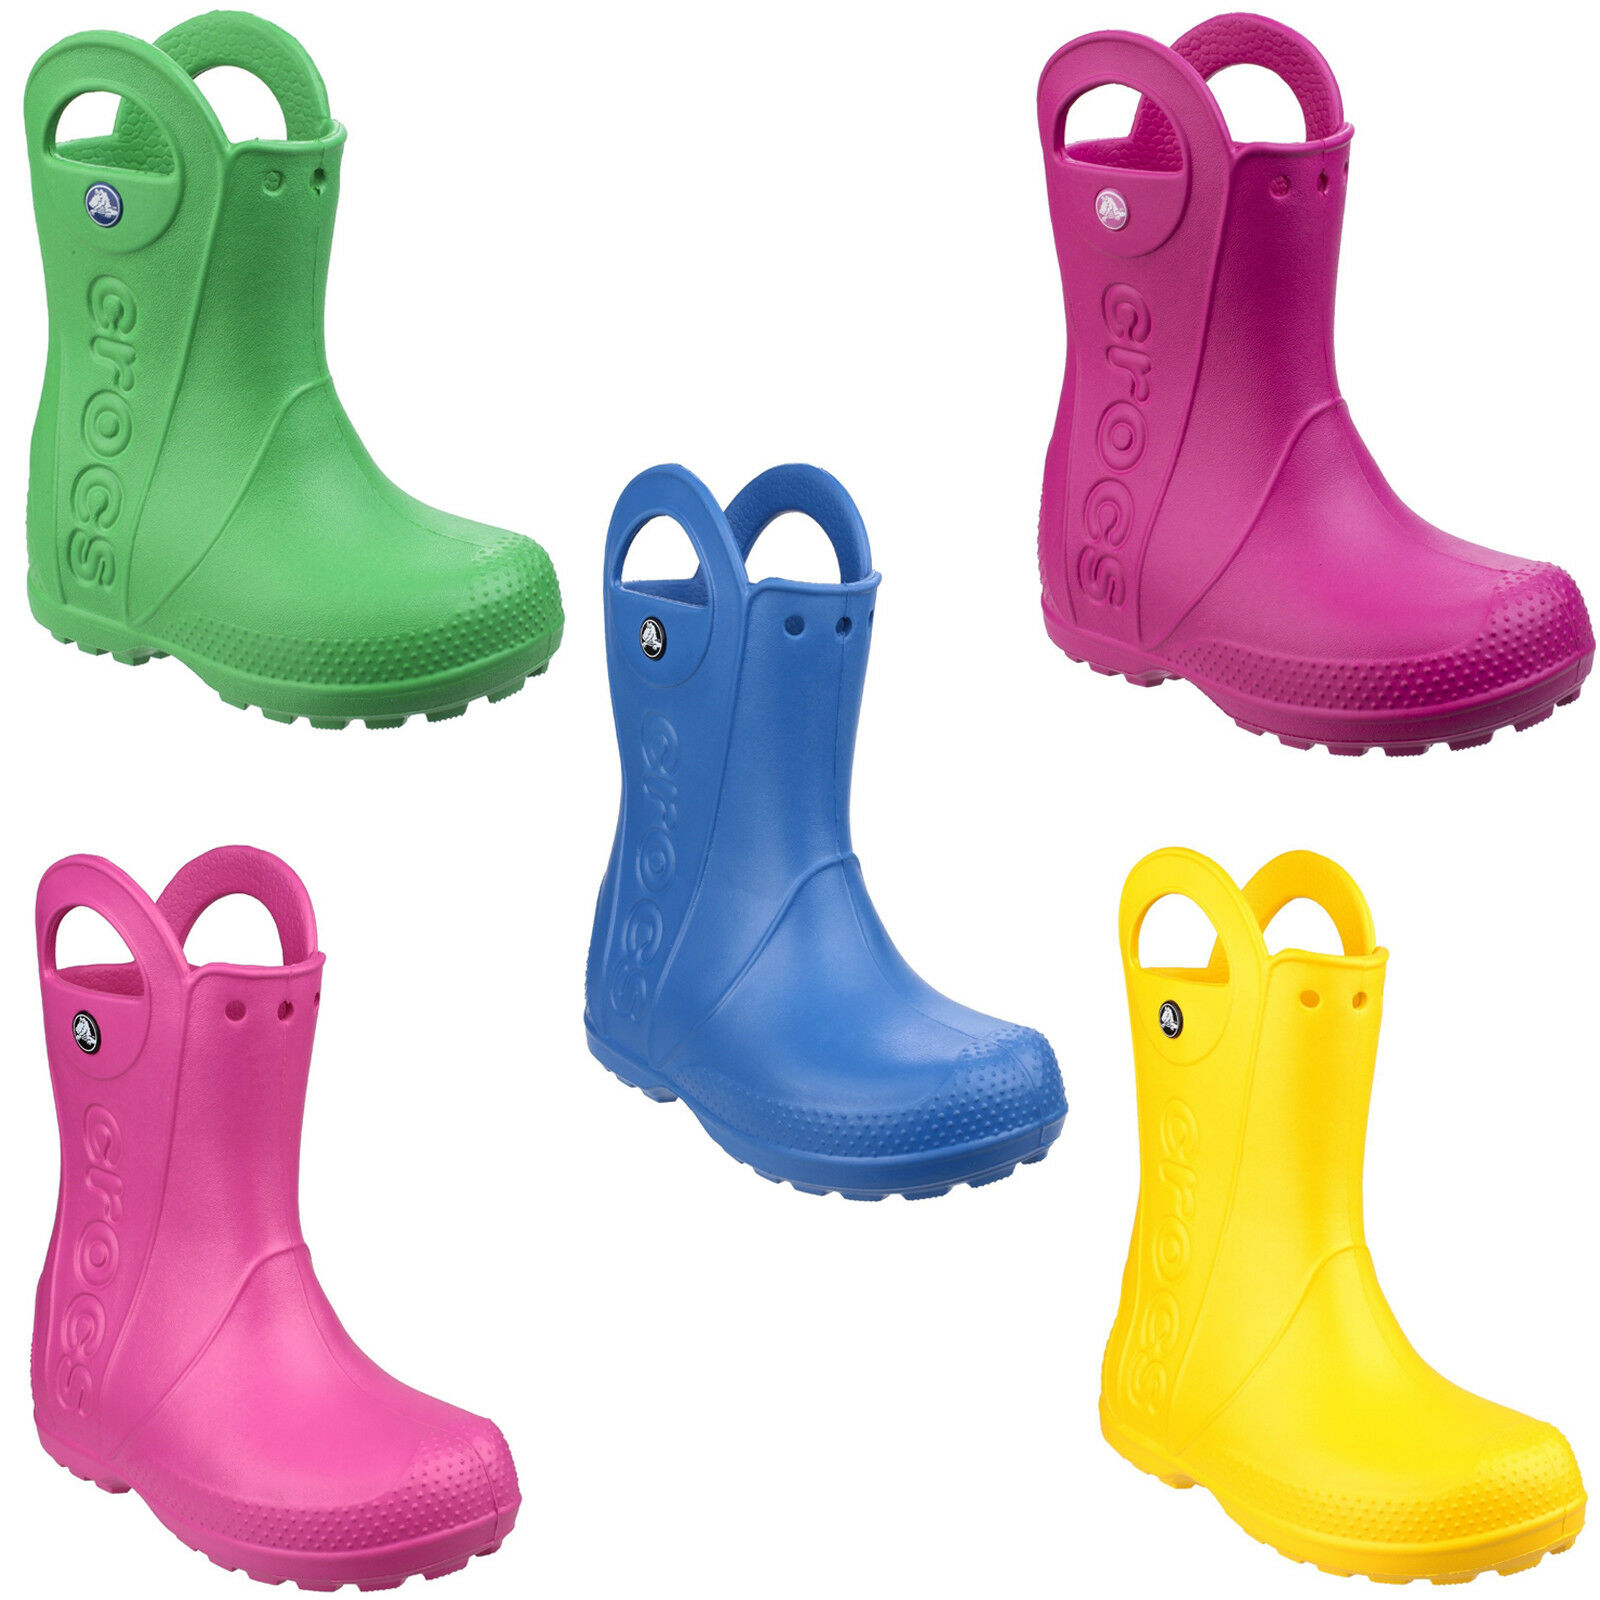 6a9893d25109 Crocs Kids Handle It Wellingtons Childrens Waterproof Boys Girls UK6 ...